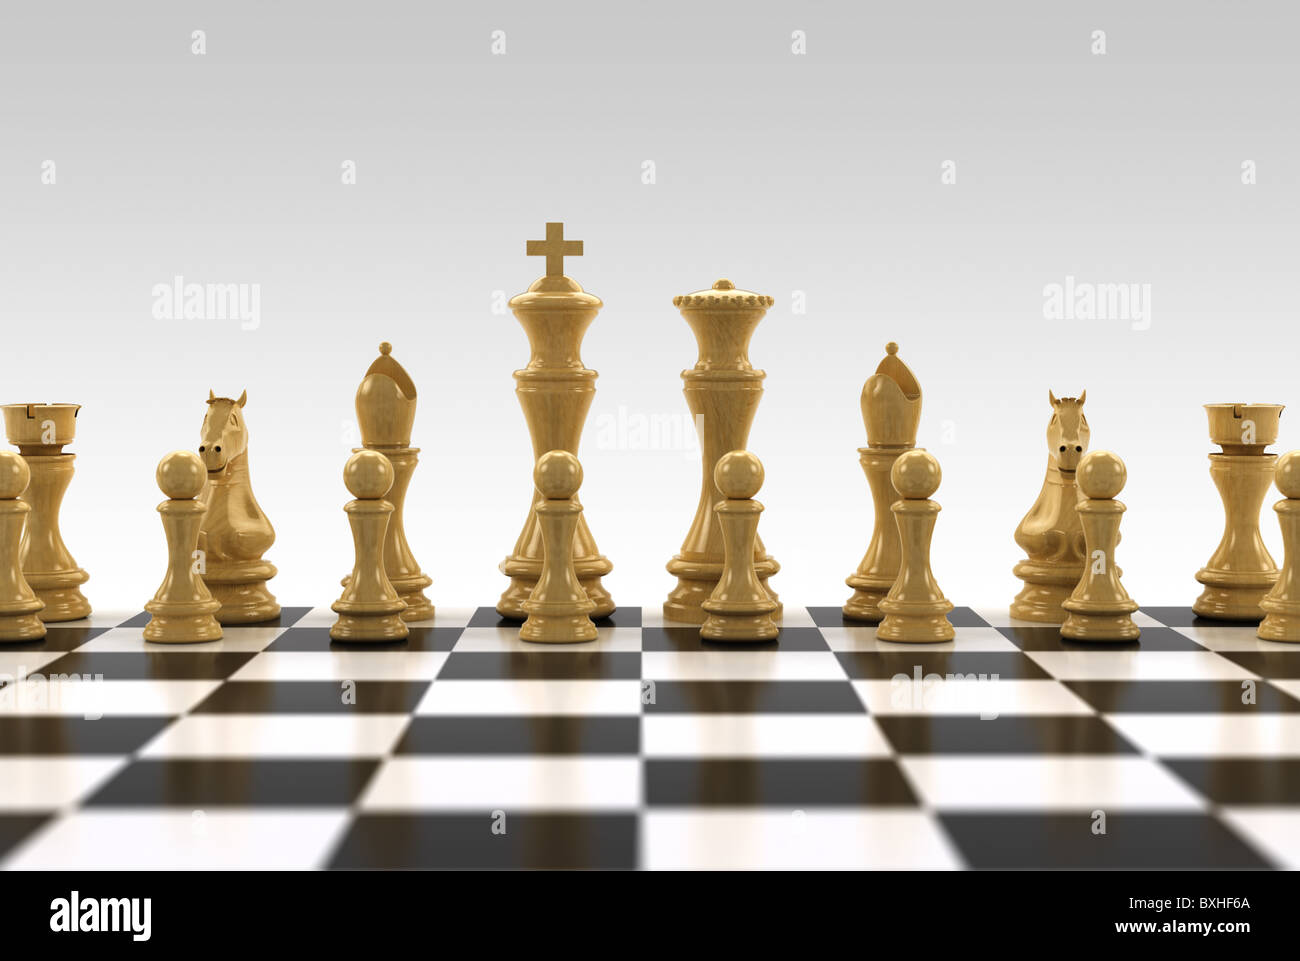 White chess pieces on chess board with very shallow depth of field - only the row with the king is in focus - Stock Image